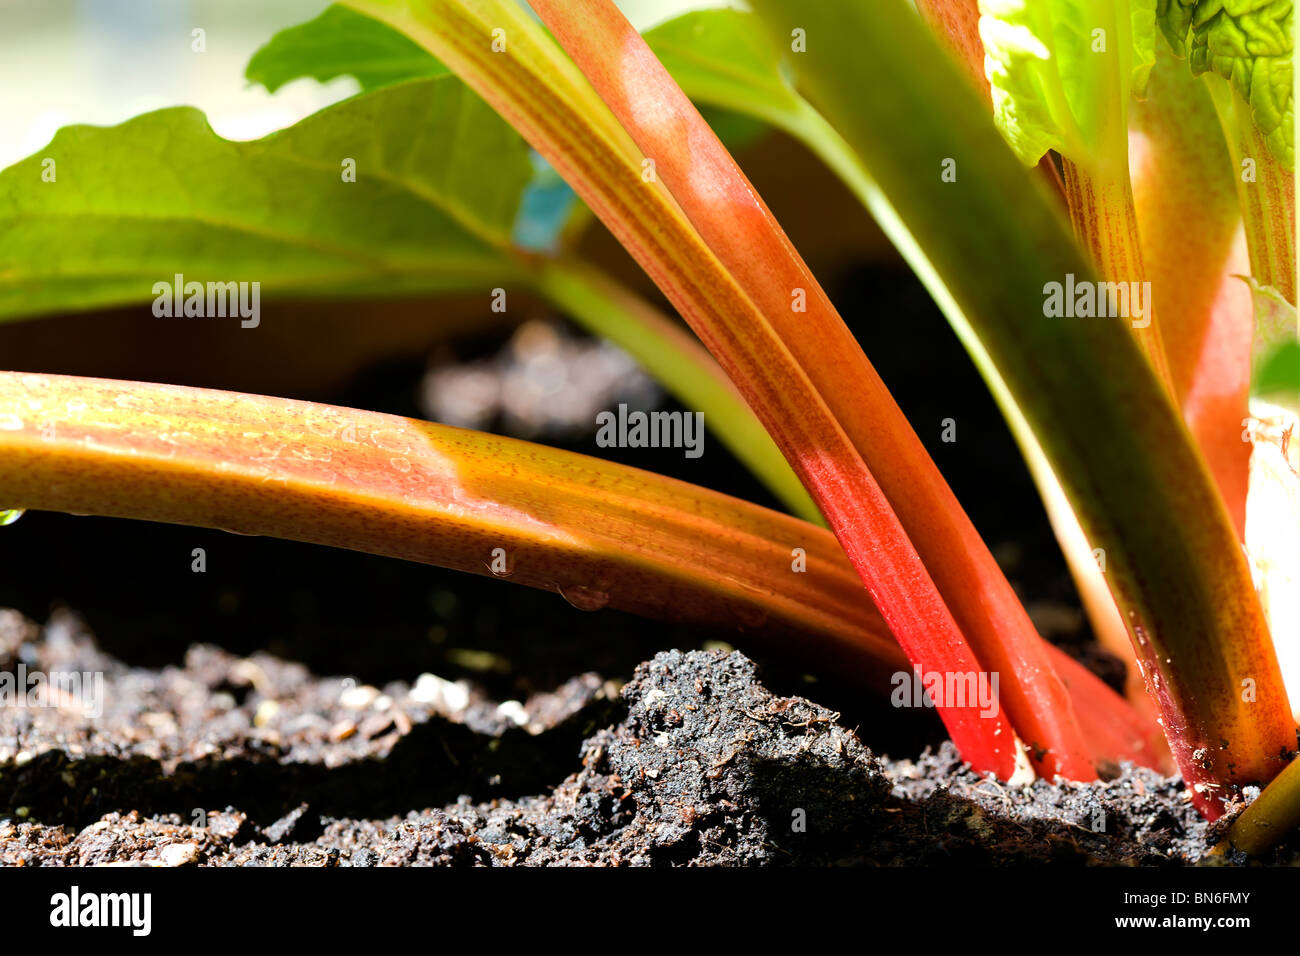 RHUBARB, A PERENNIAL PLANT WITH STALKS THAT ARE GREENISH PINK TO DARK RED IN COLOUR. A VEGETABLE BUT ALWAYS SERVED - Stock Image